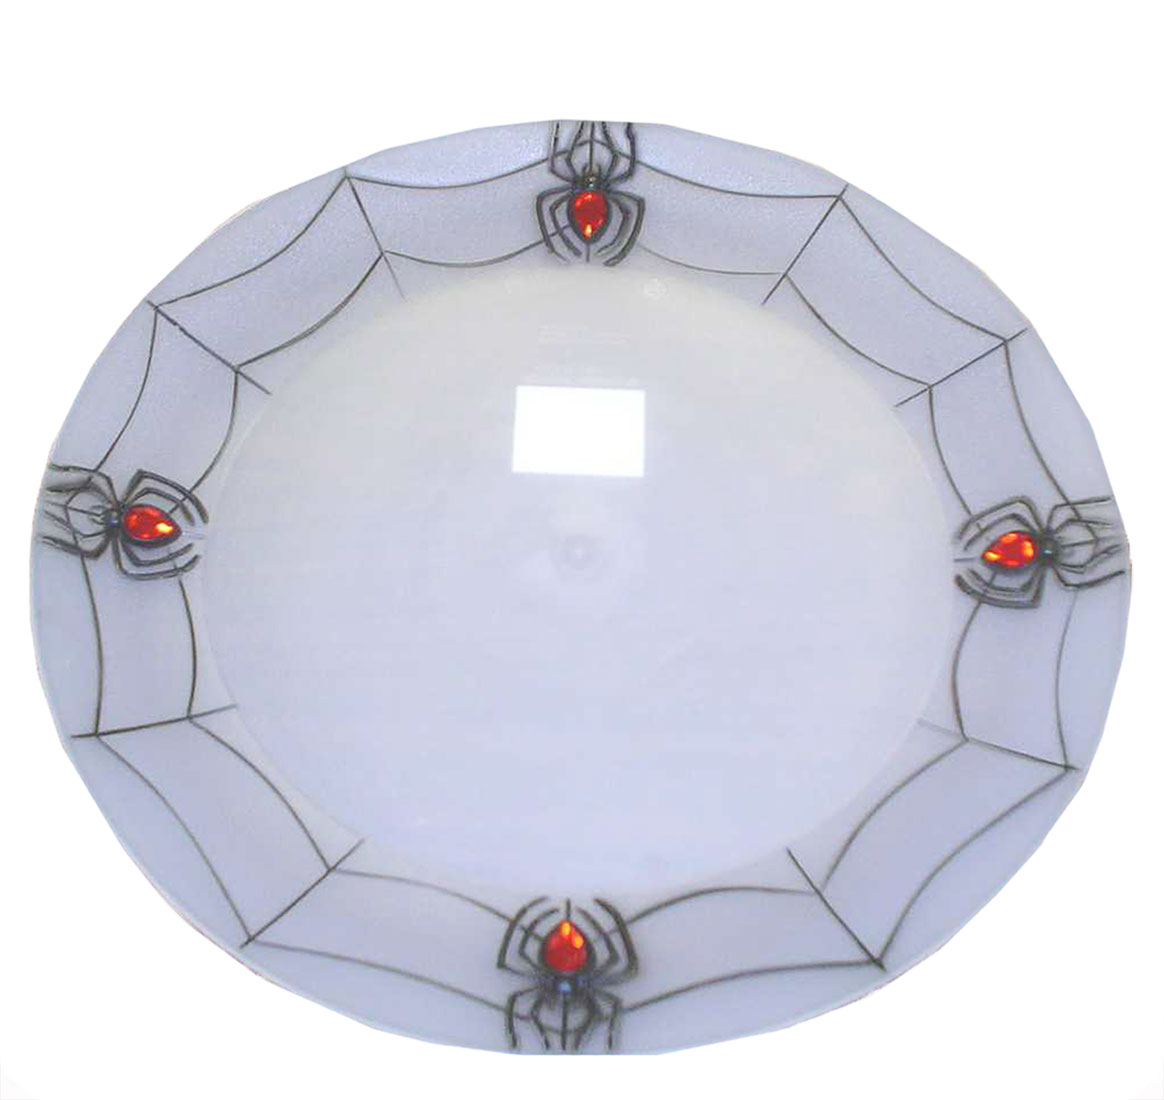 Halloween Spiderweb Tray - Click Image to Close